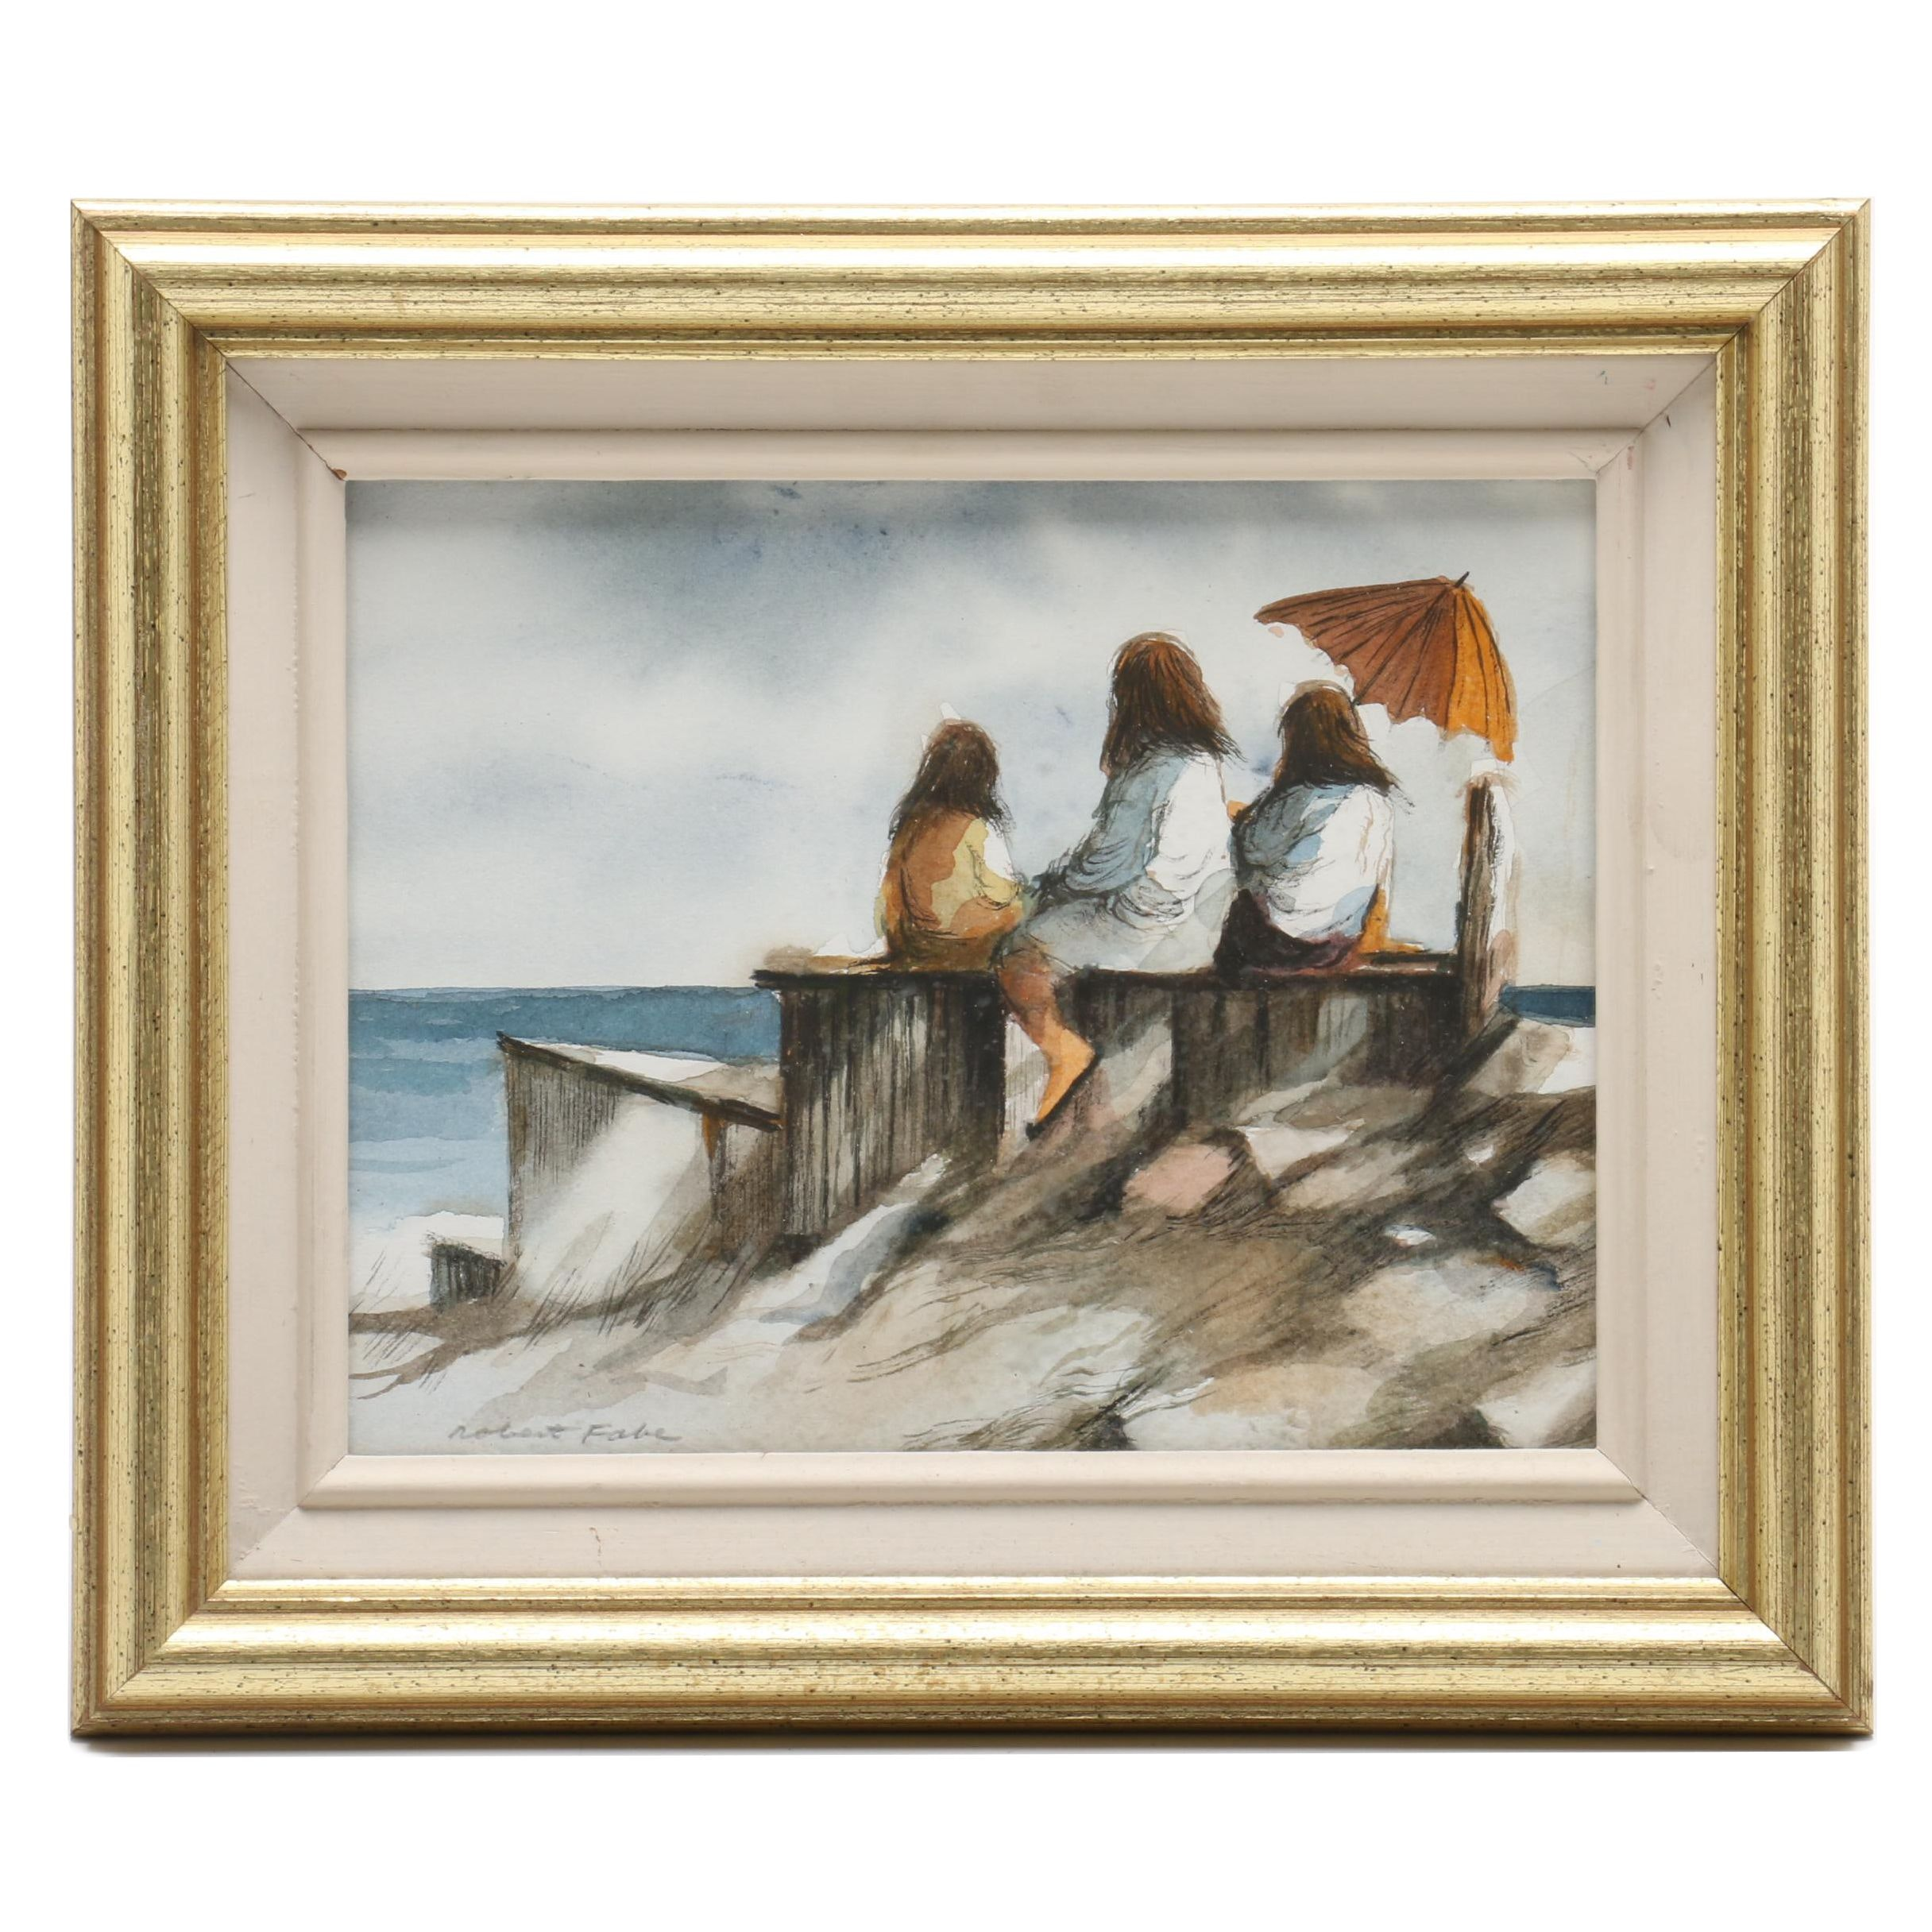 Robert Fabe Watercolor Painting of Girls at the Shore